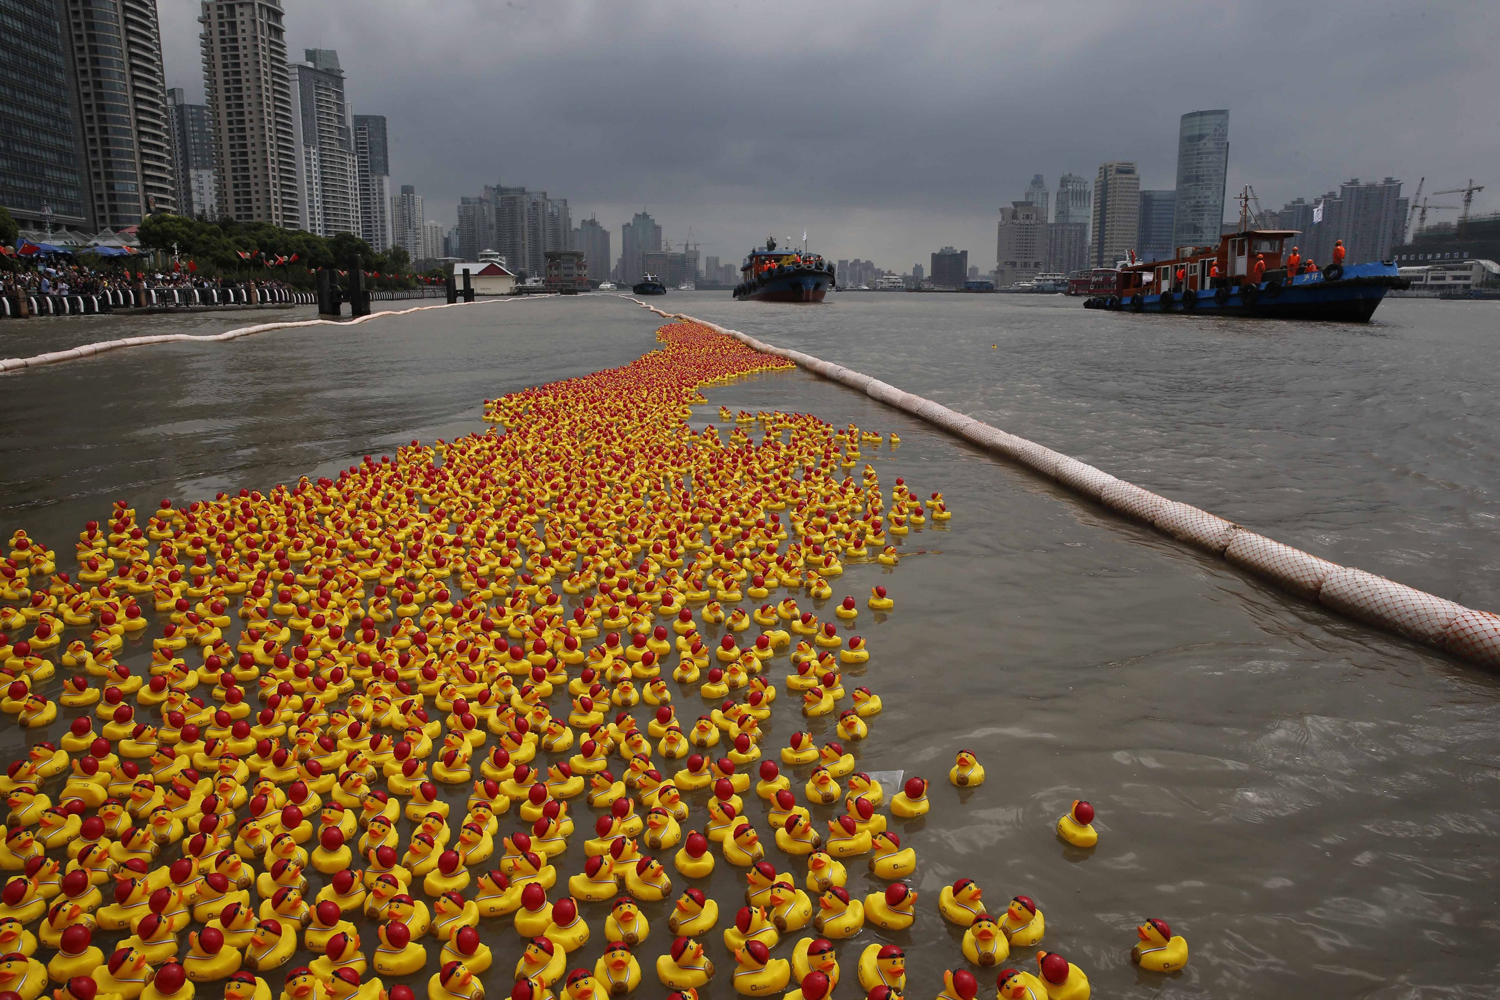 Oct. 5, 2013. Rubber ducks, all adapted into wearing swimming caps and Special Olympic gold medals, drifting down Huangpu River in a charity event in Shanghai, China.